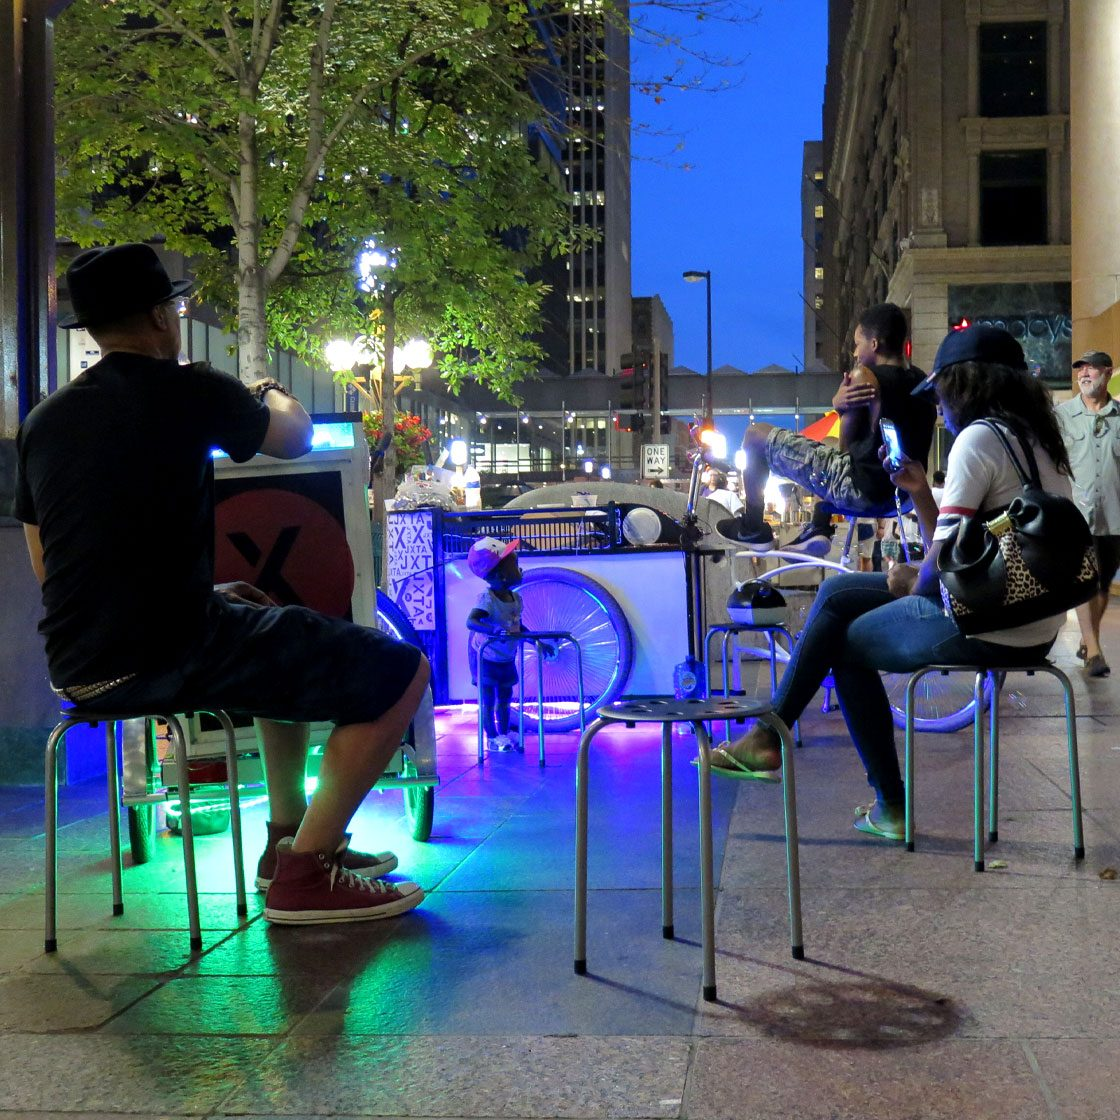 Several people sitting around lit up tables in the dusk on a street